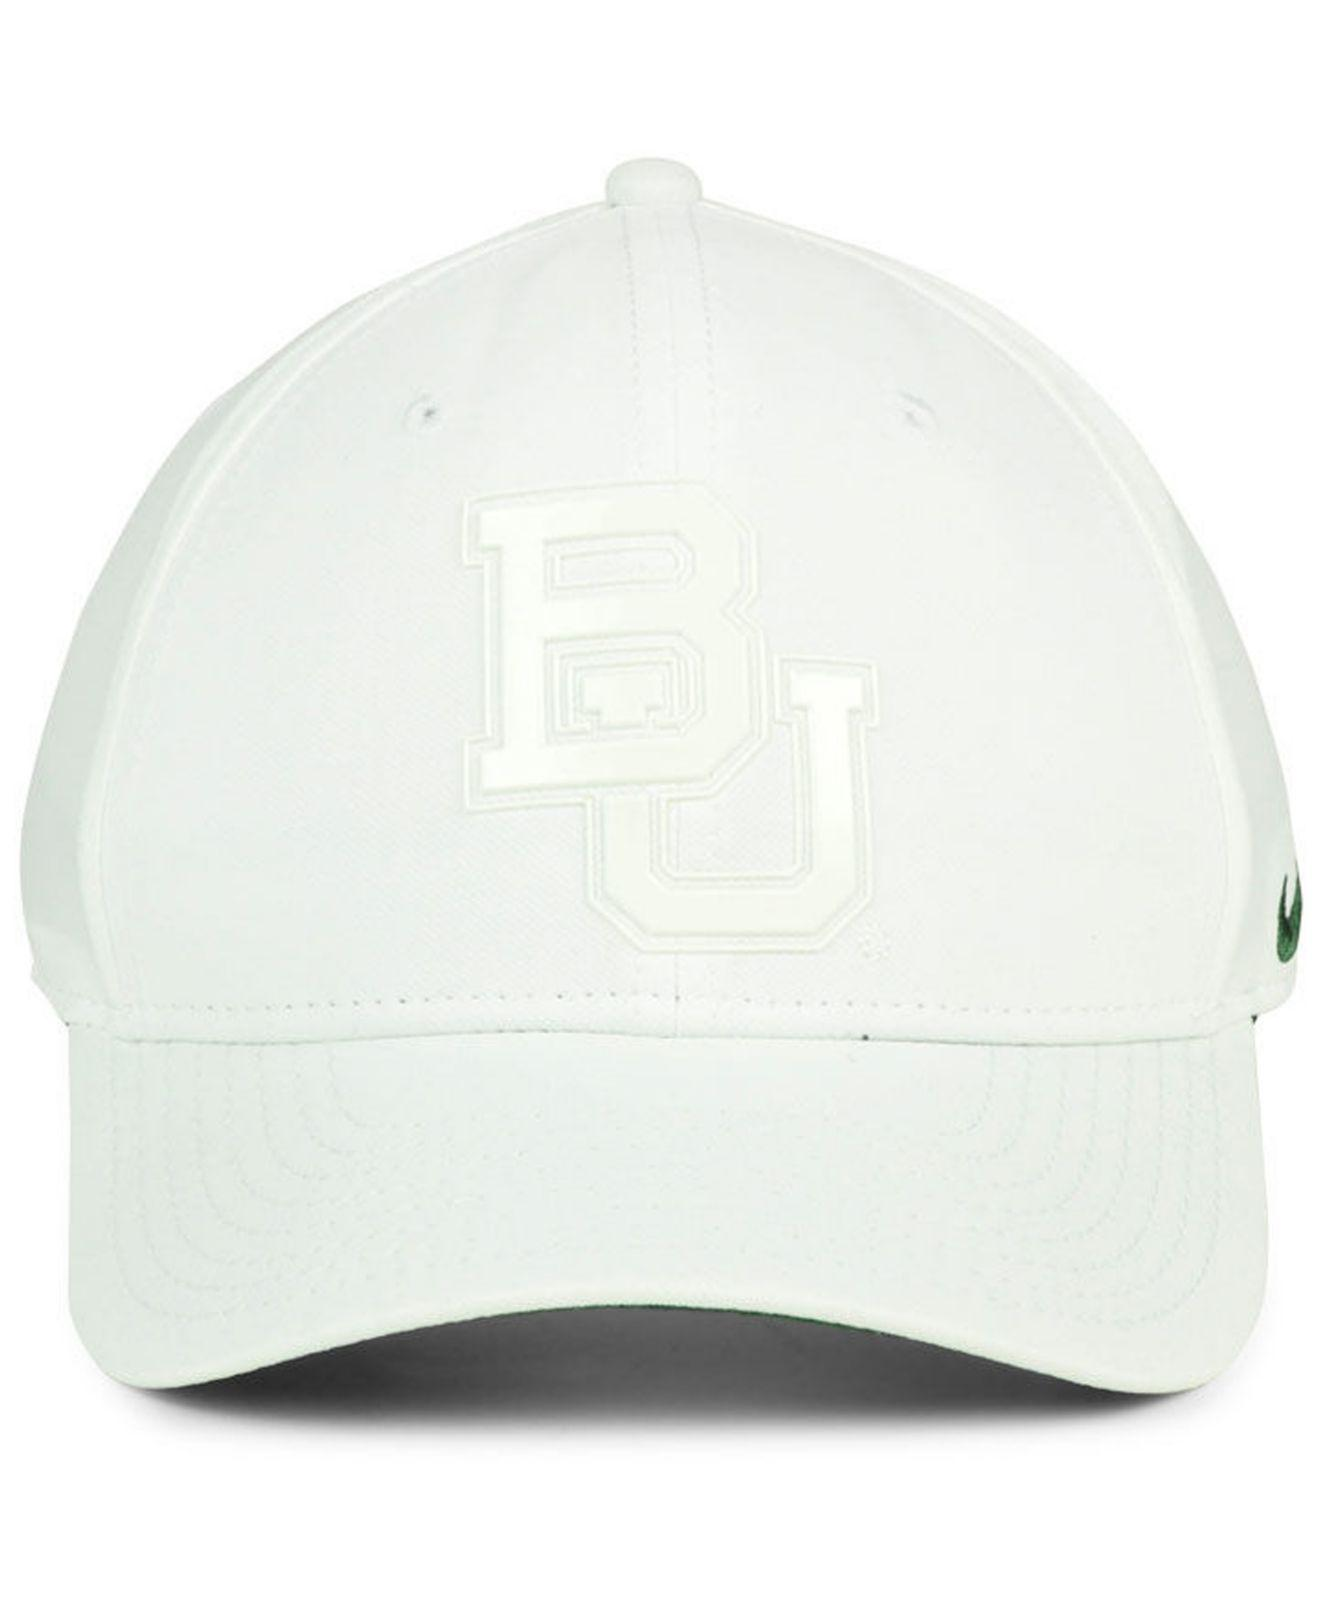 best website 90225 580eb ... canada lyst nike baylor bears col cap in white for men 0e2f0 eed20